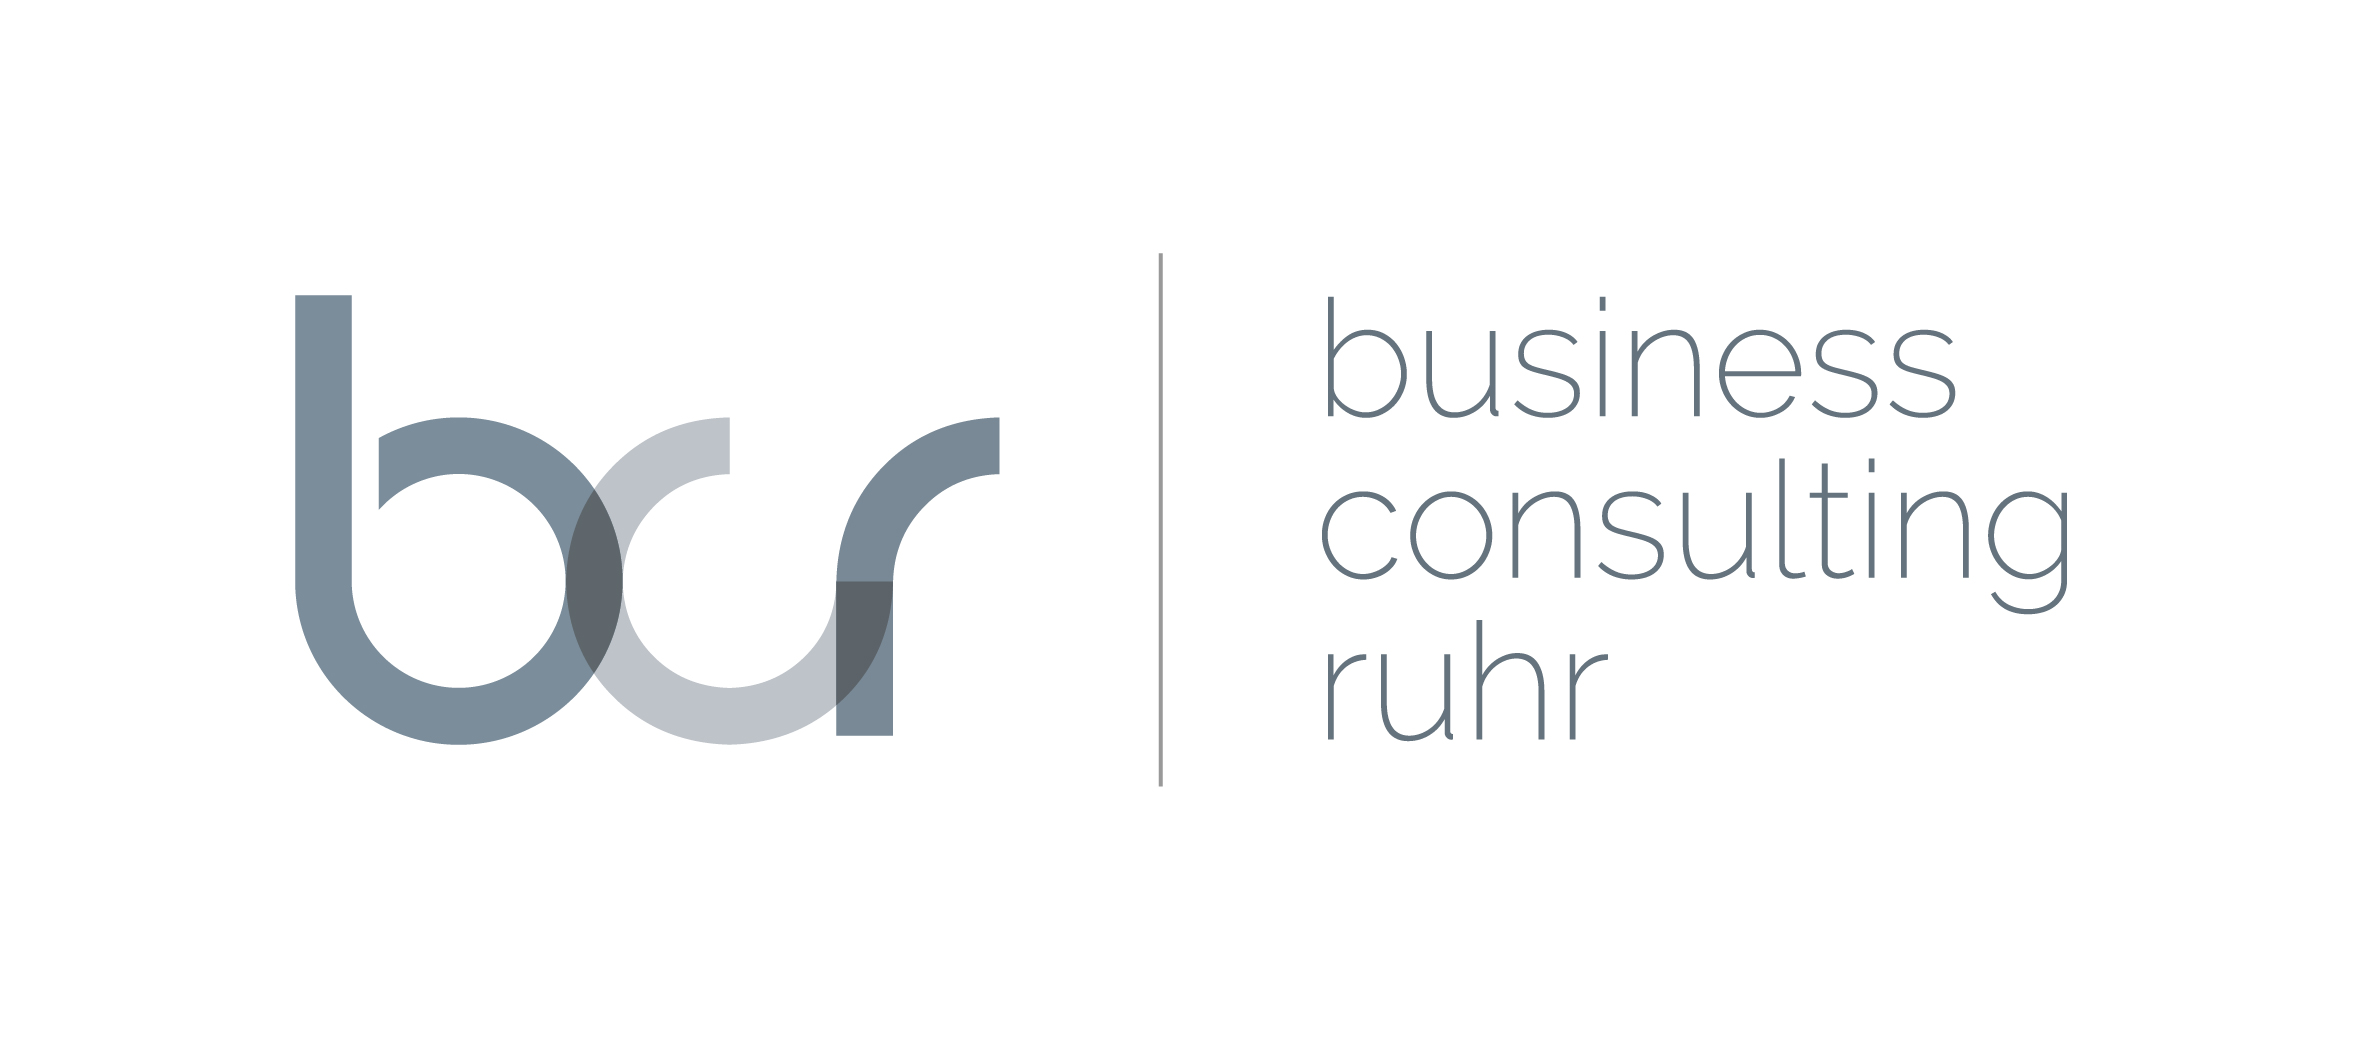 business consulting ruhr